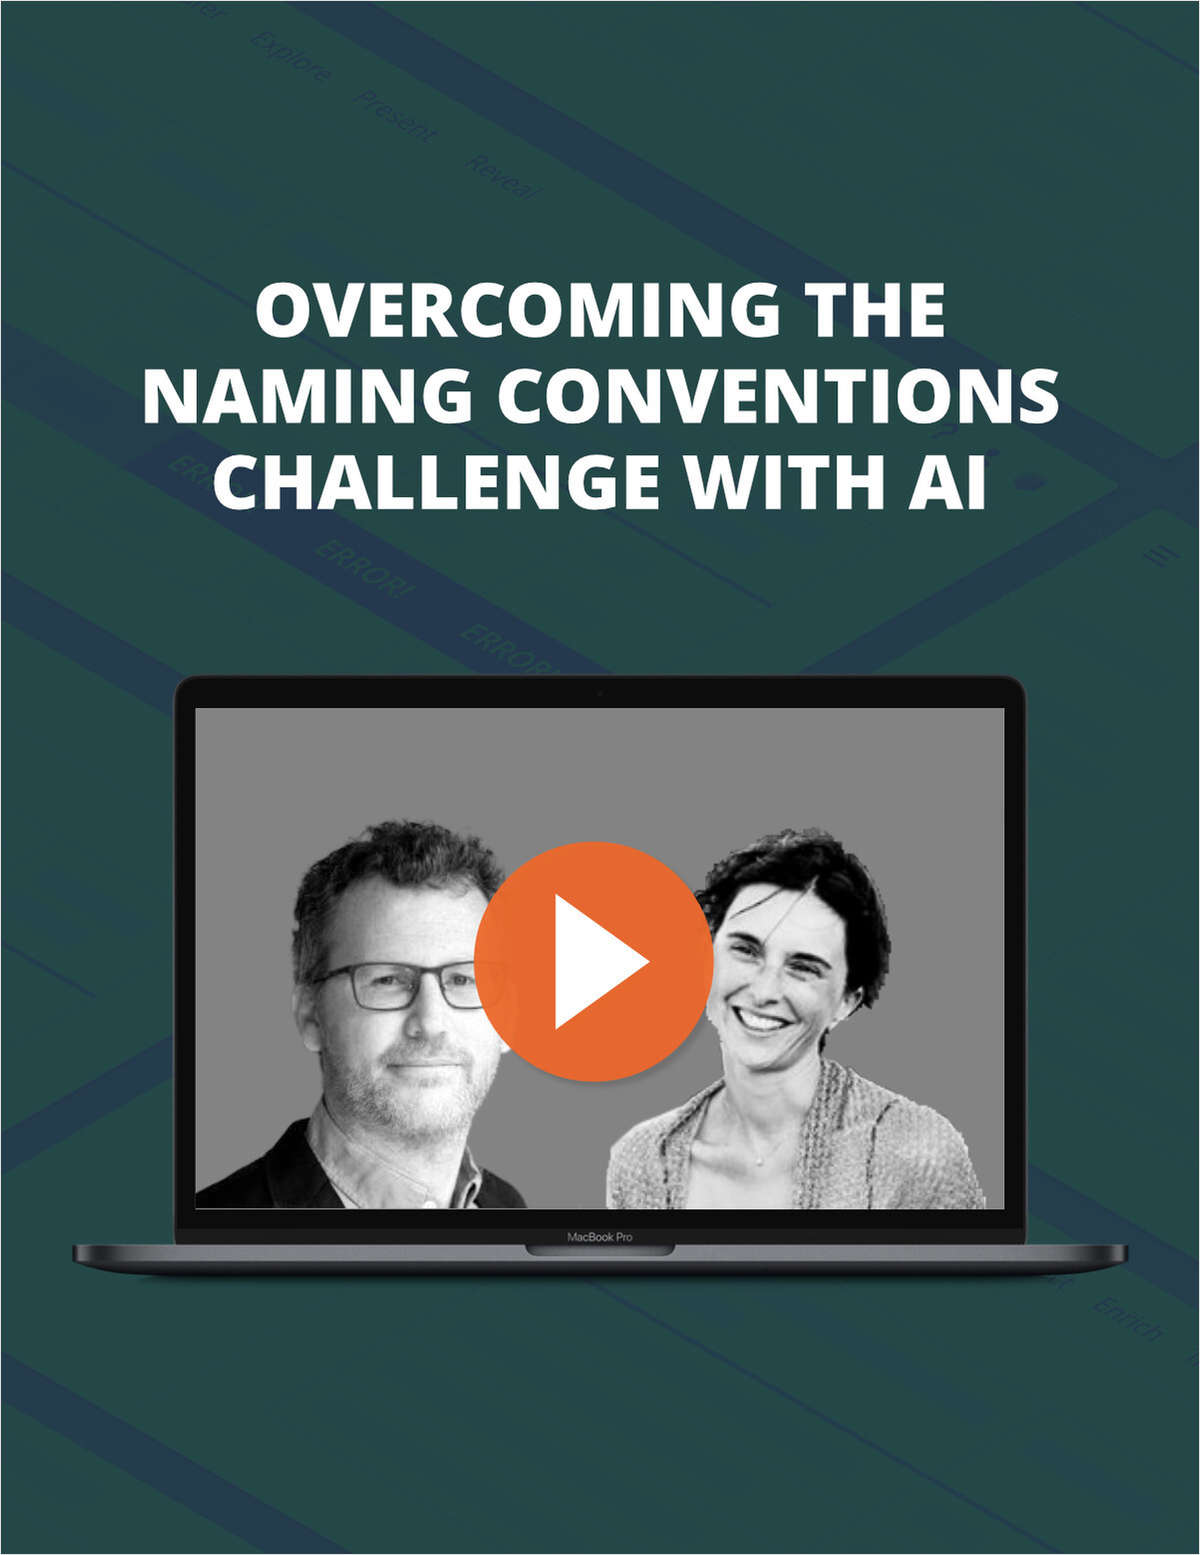 OVERCOMING THE NAMING CONVENTIONS CHALLENGE WITH AI